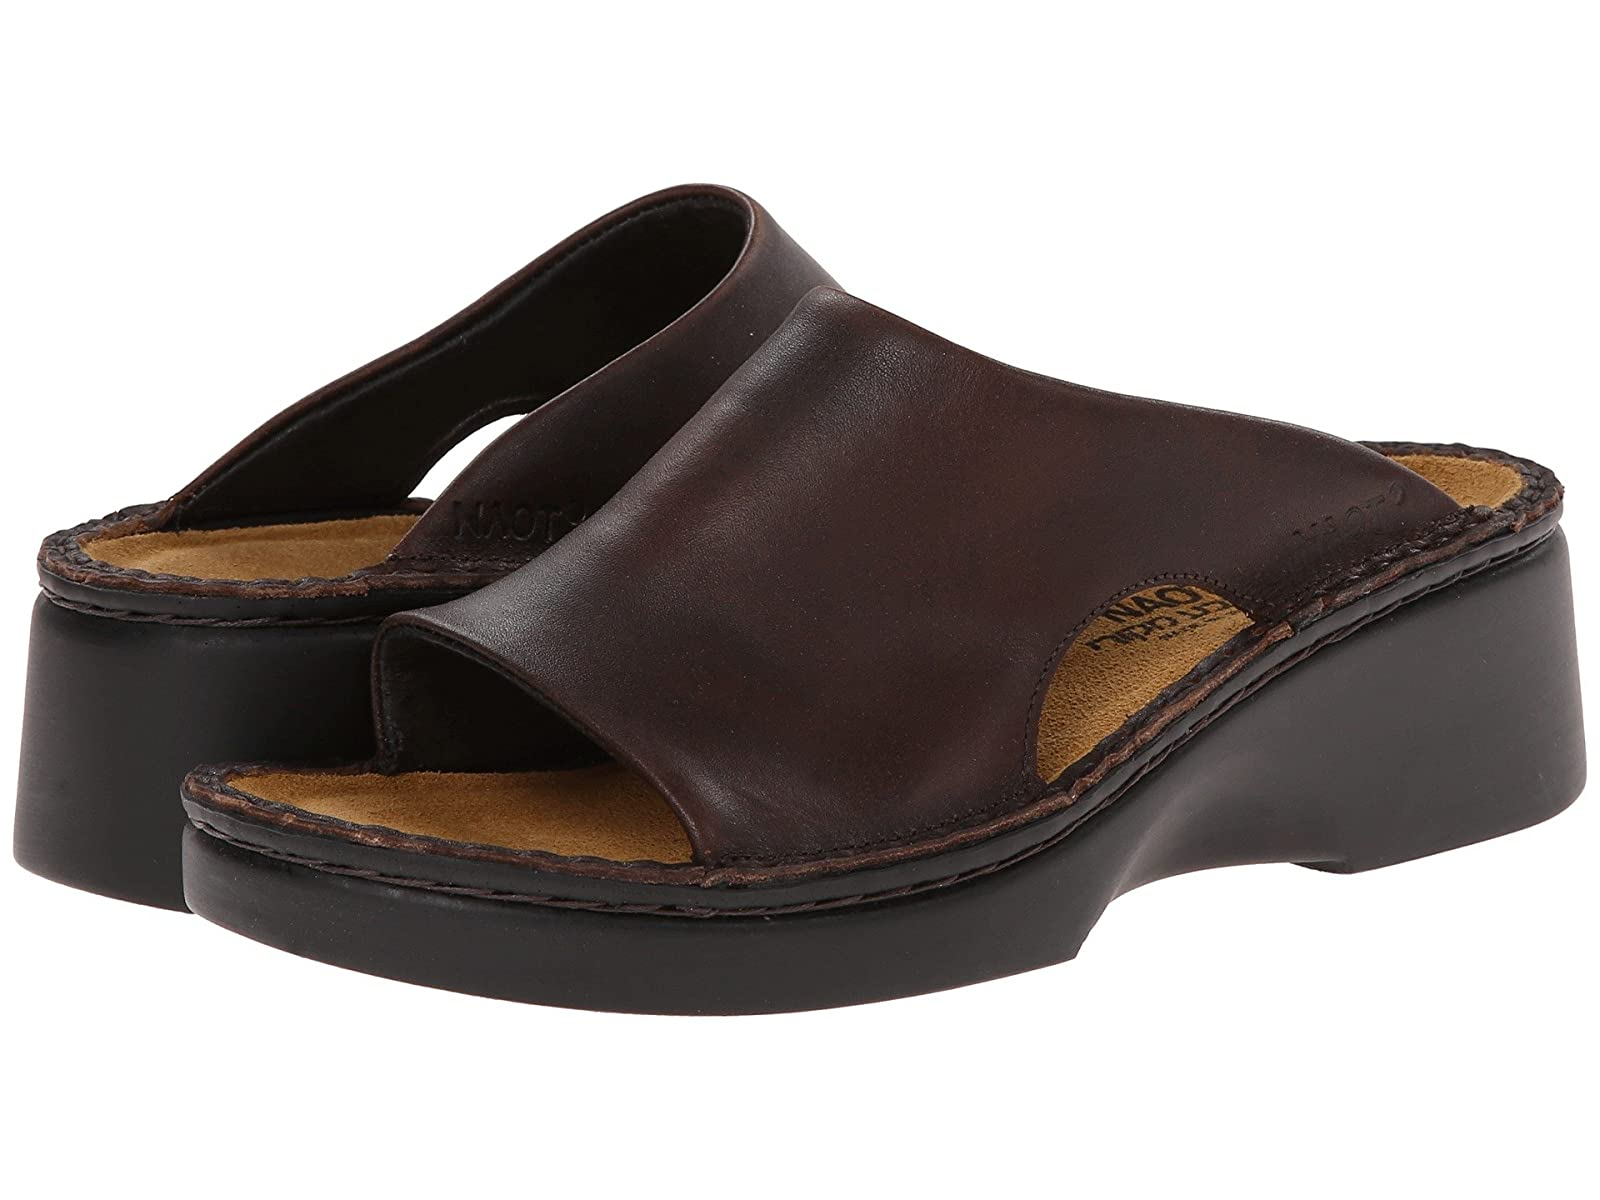 Naot RomeAtmospheric grades have affordable shoes